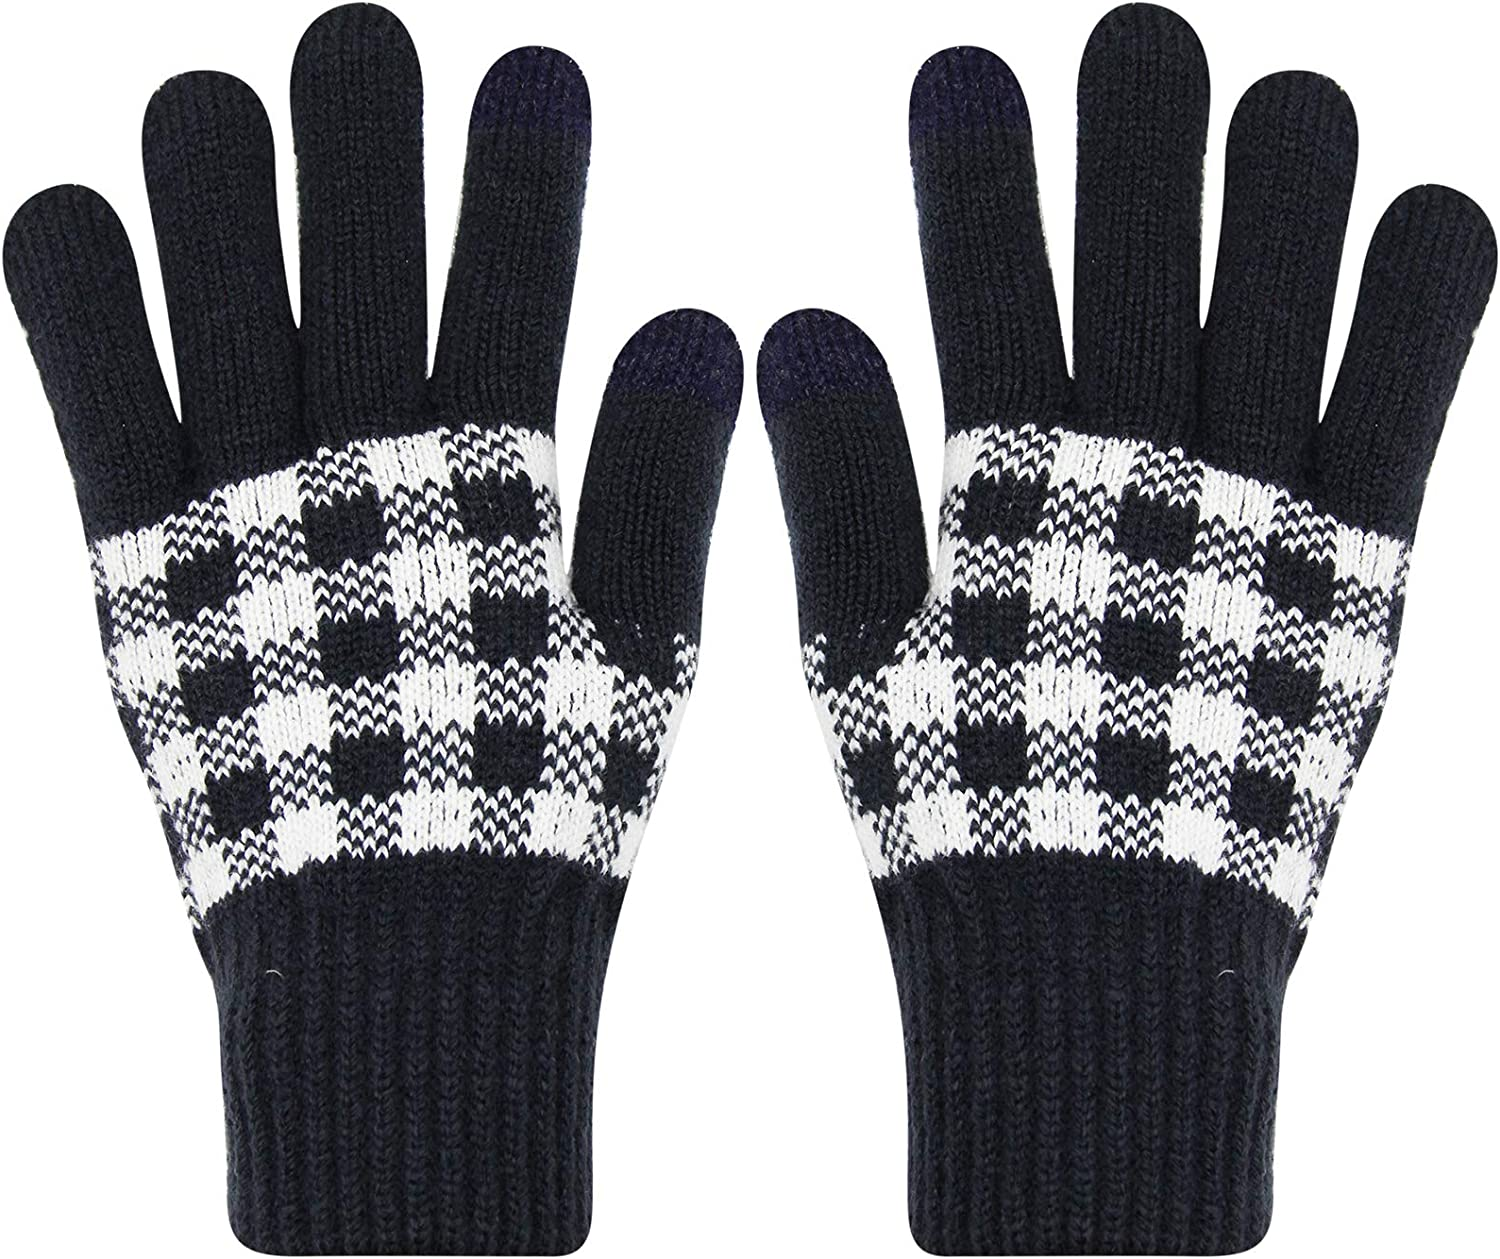 Unisex Winter Plaid Knitted Touch Screen Gloves Full Finger Thicken Fleece Lined Texting Mittens for Men Women